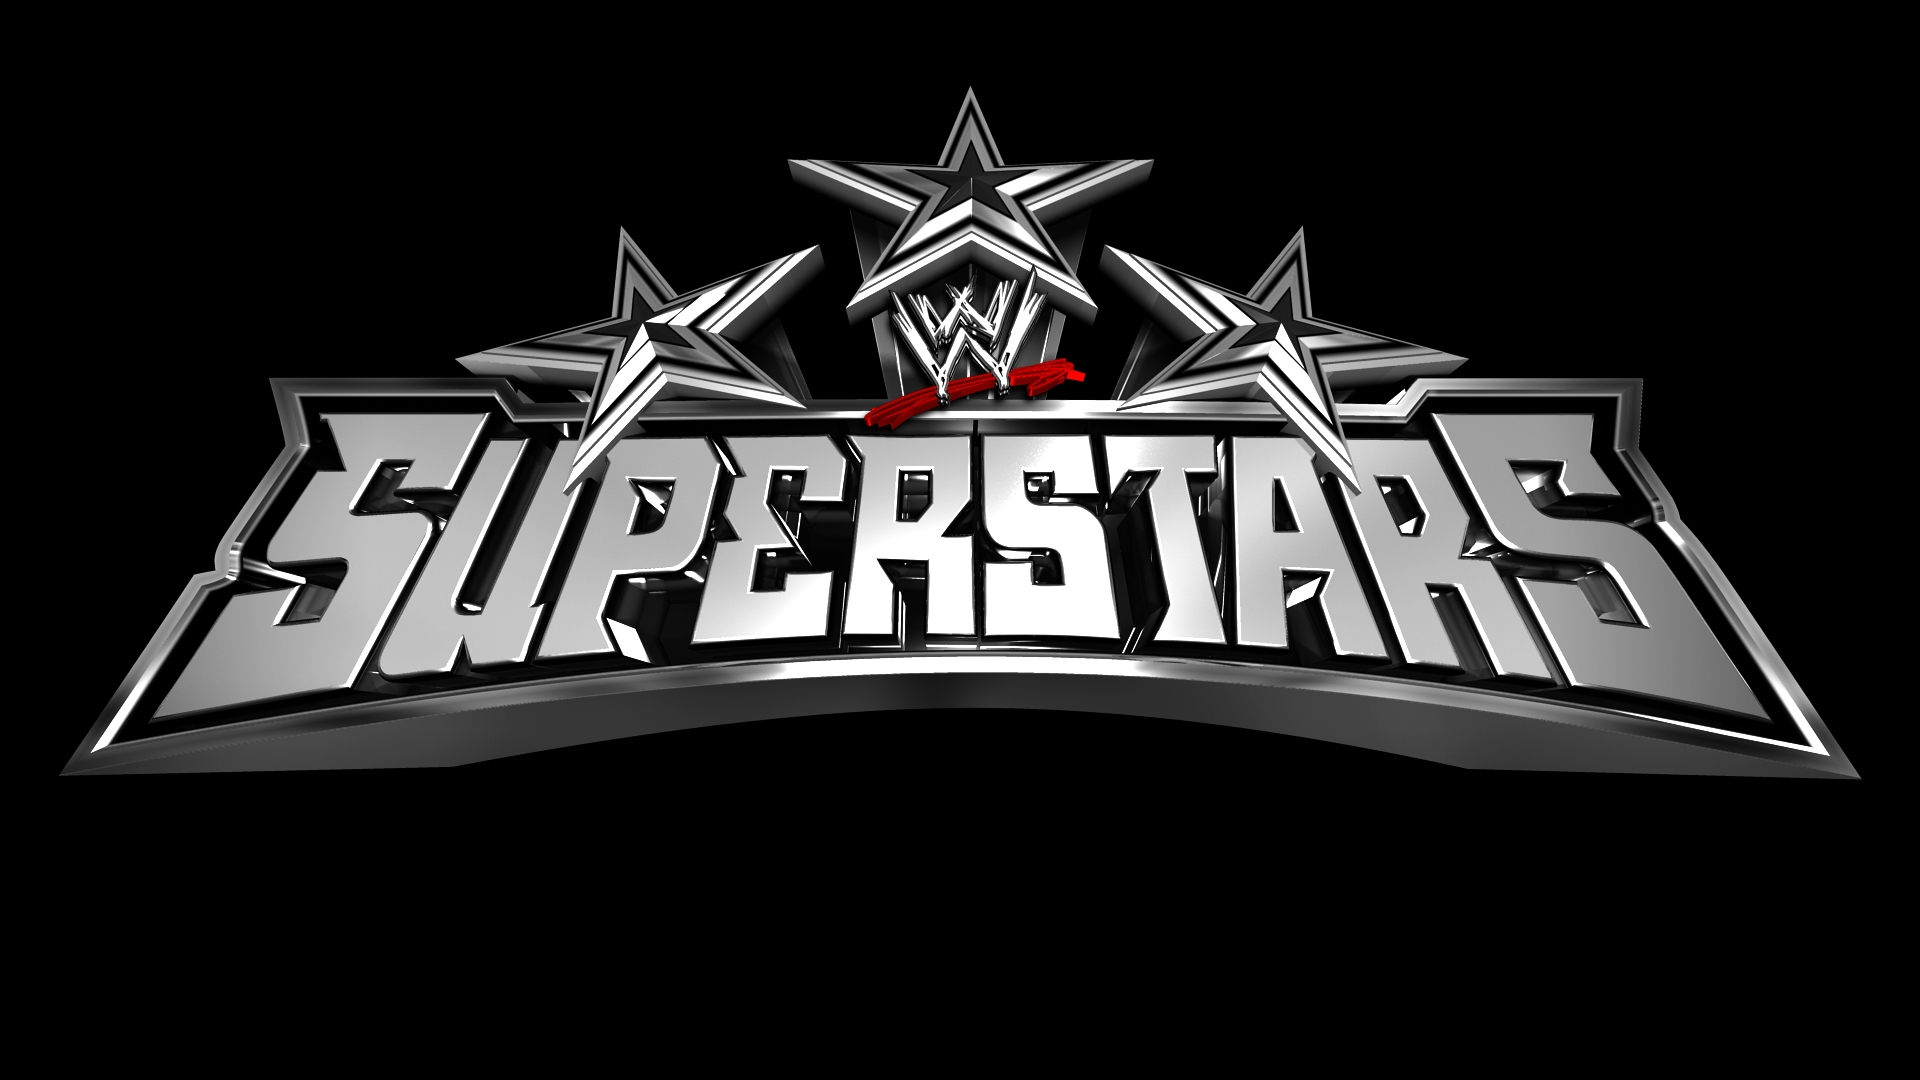 wwe superstars logo wallpaper 427454